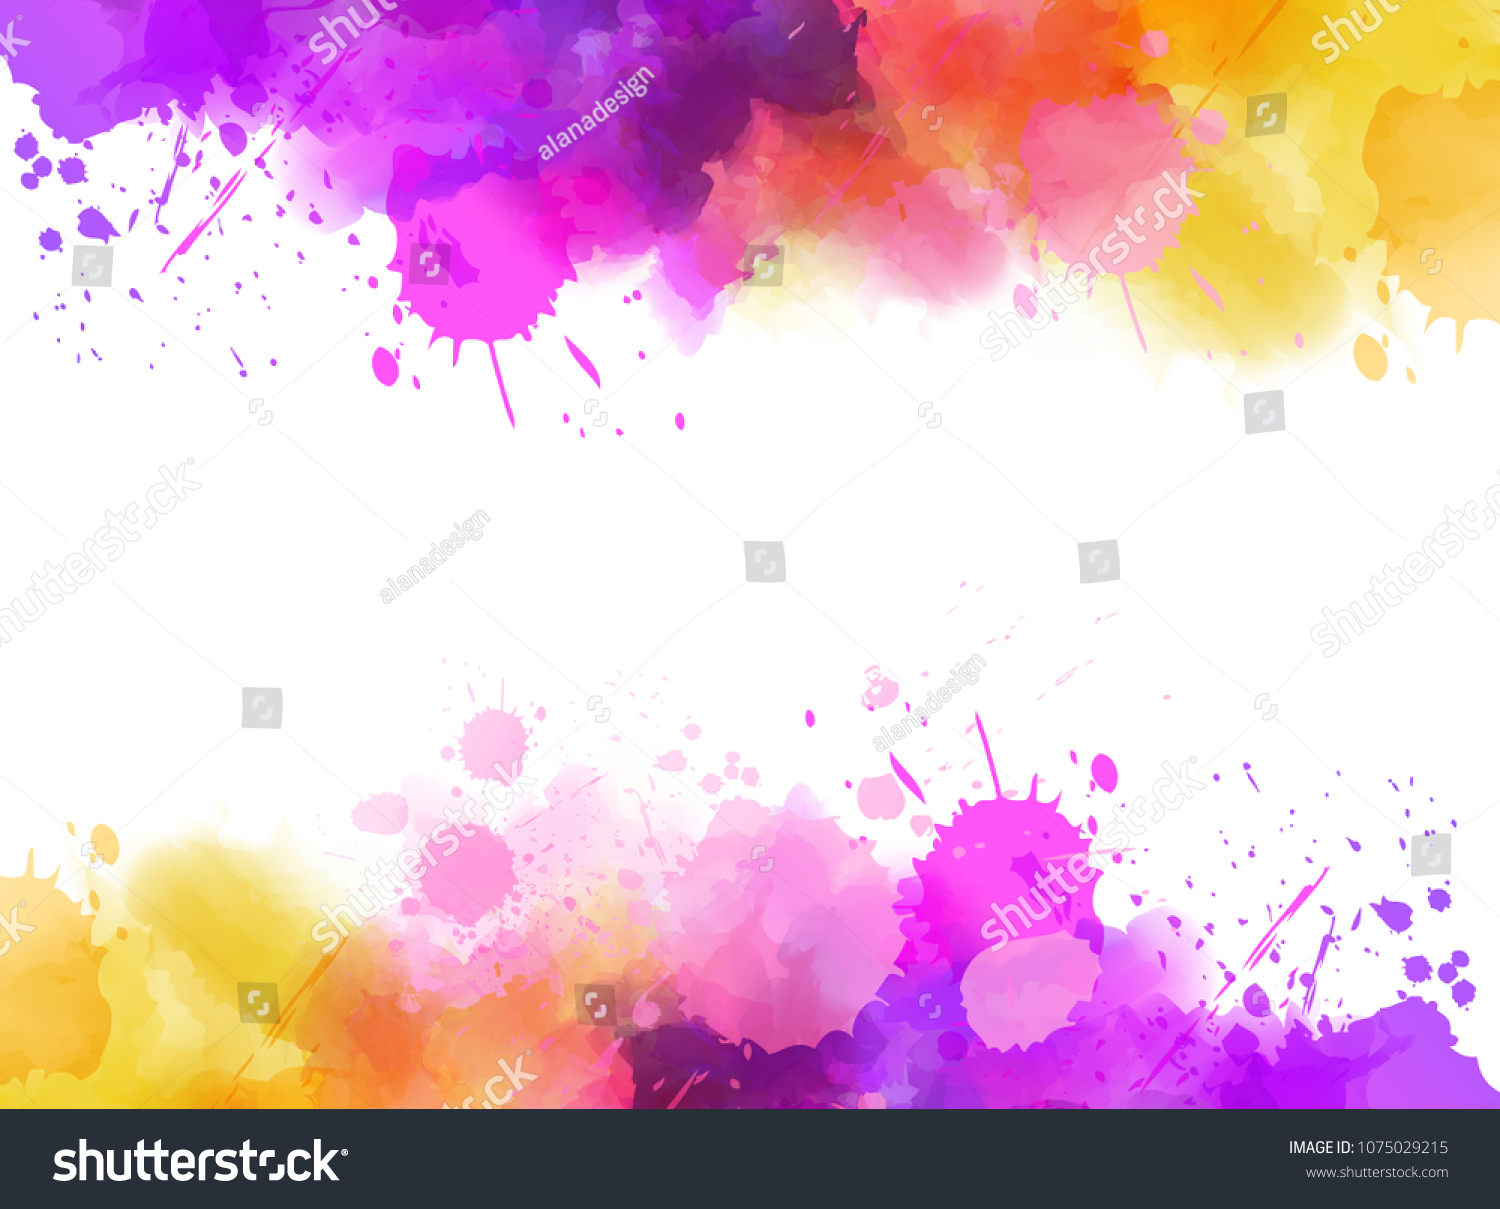 Abstract Background Banner Watercolor Splashes Frame Stock Vector (Royalty  Free) 1075029215